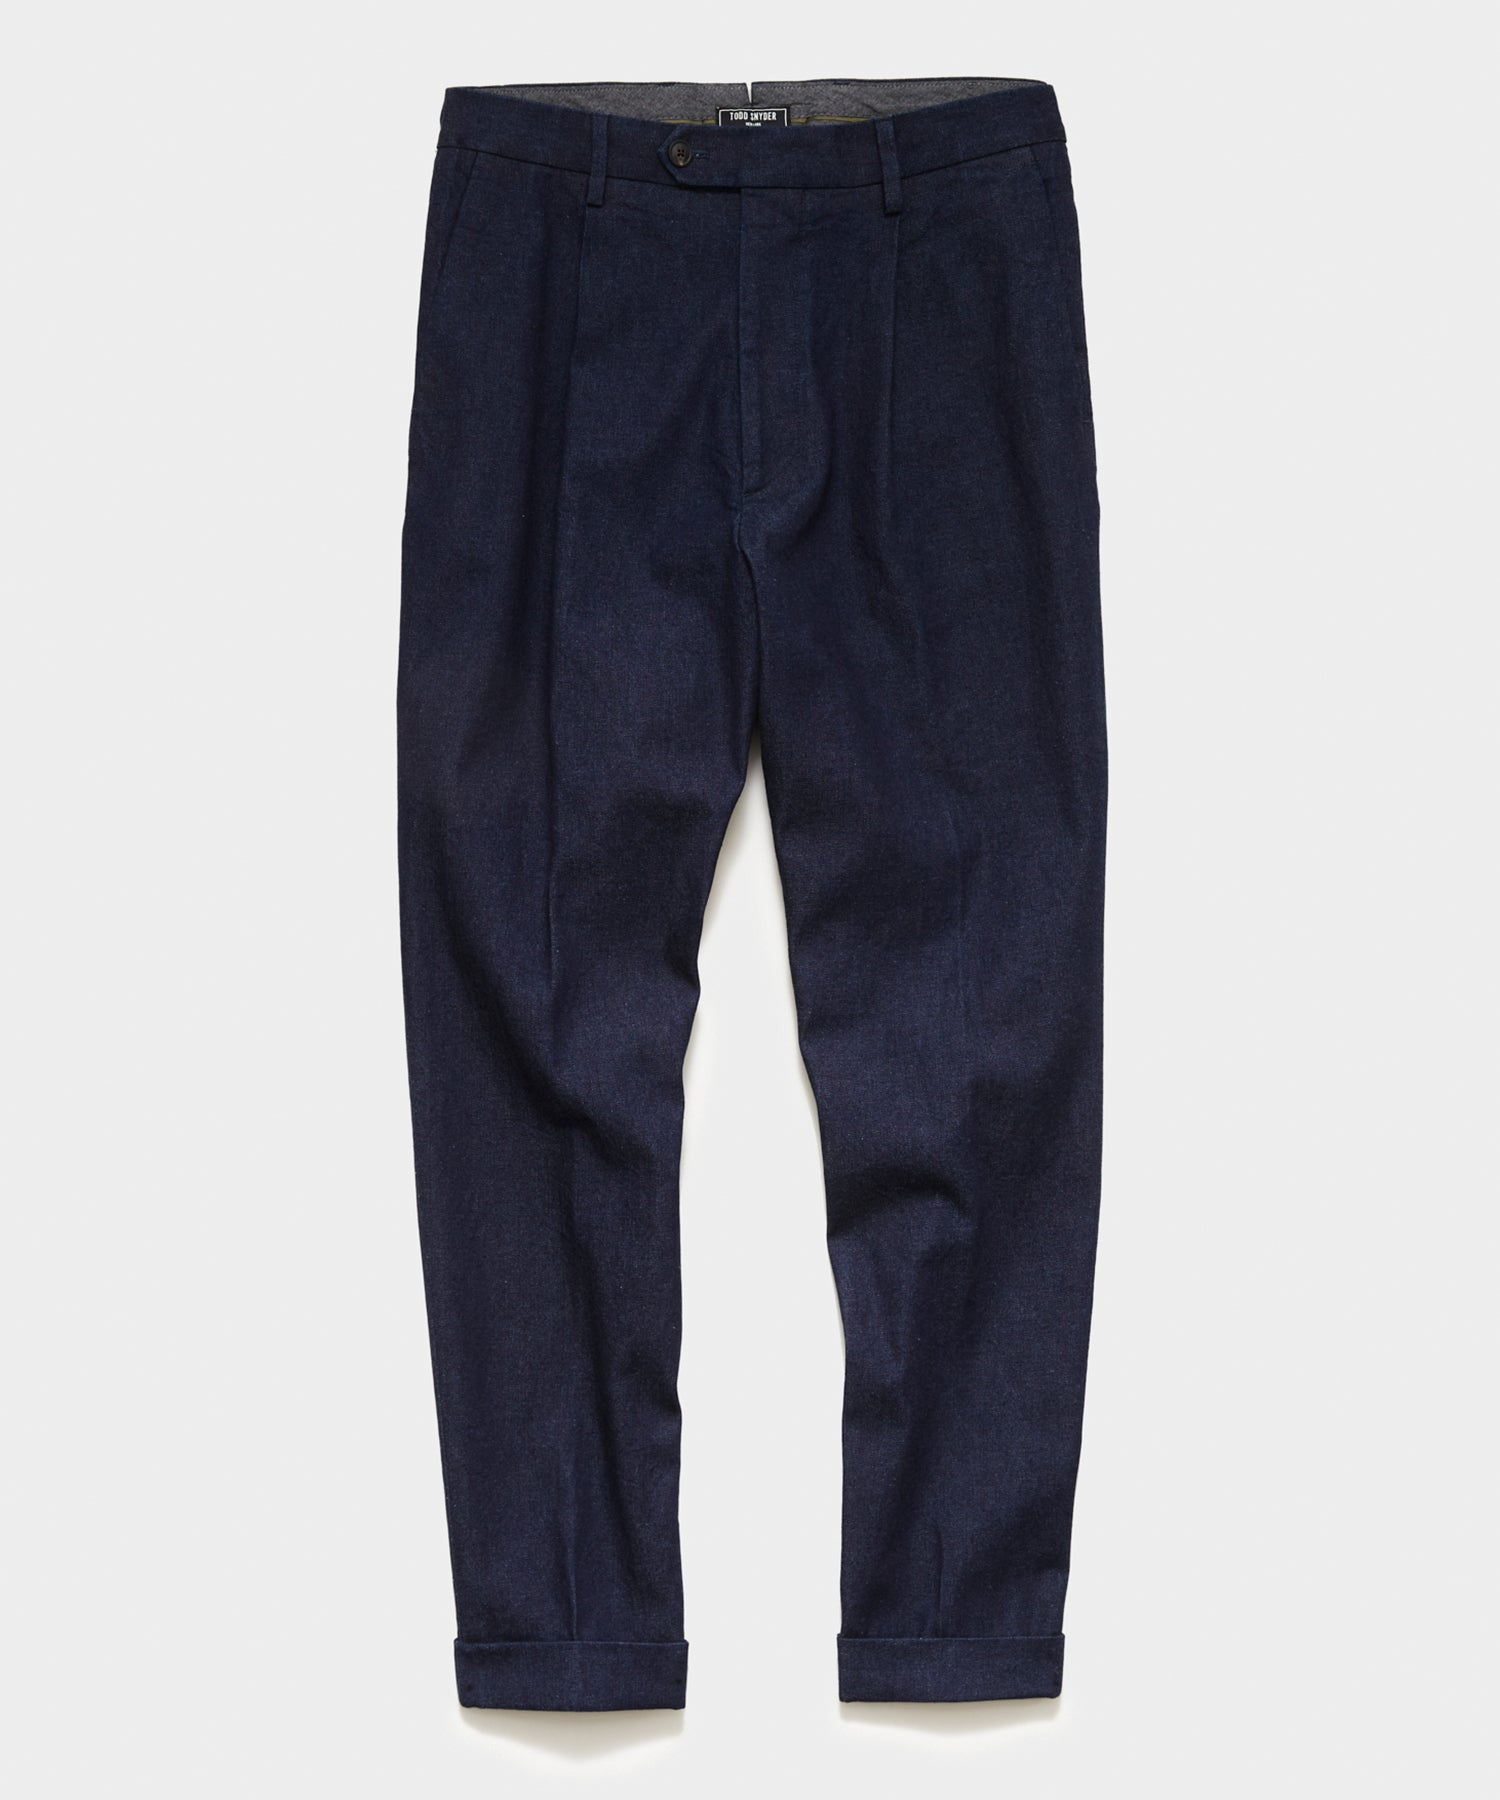 Japanese Madison Denim Pleated Pant in Indigo